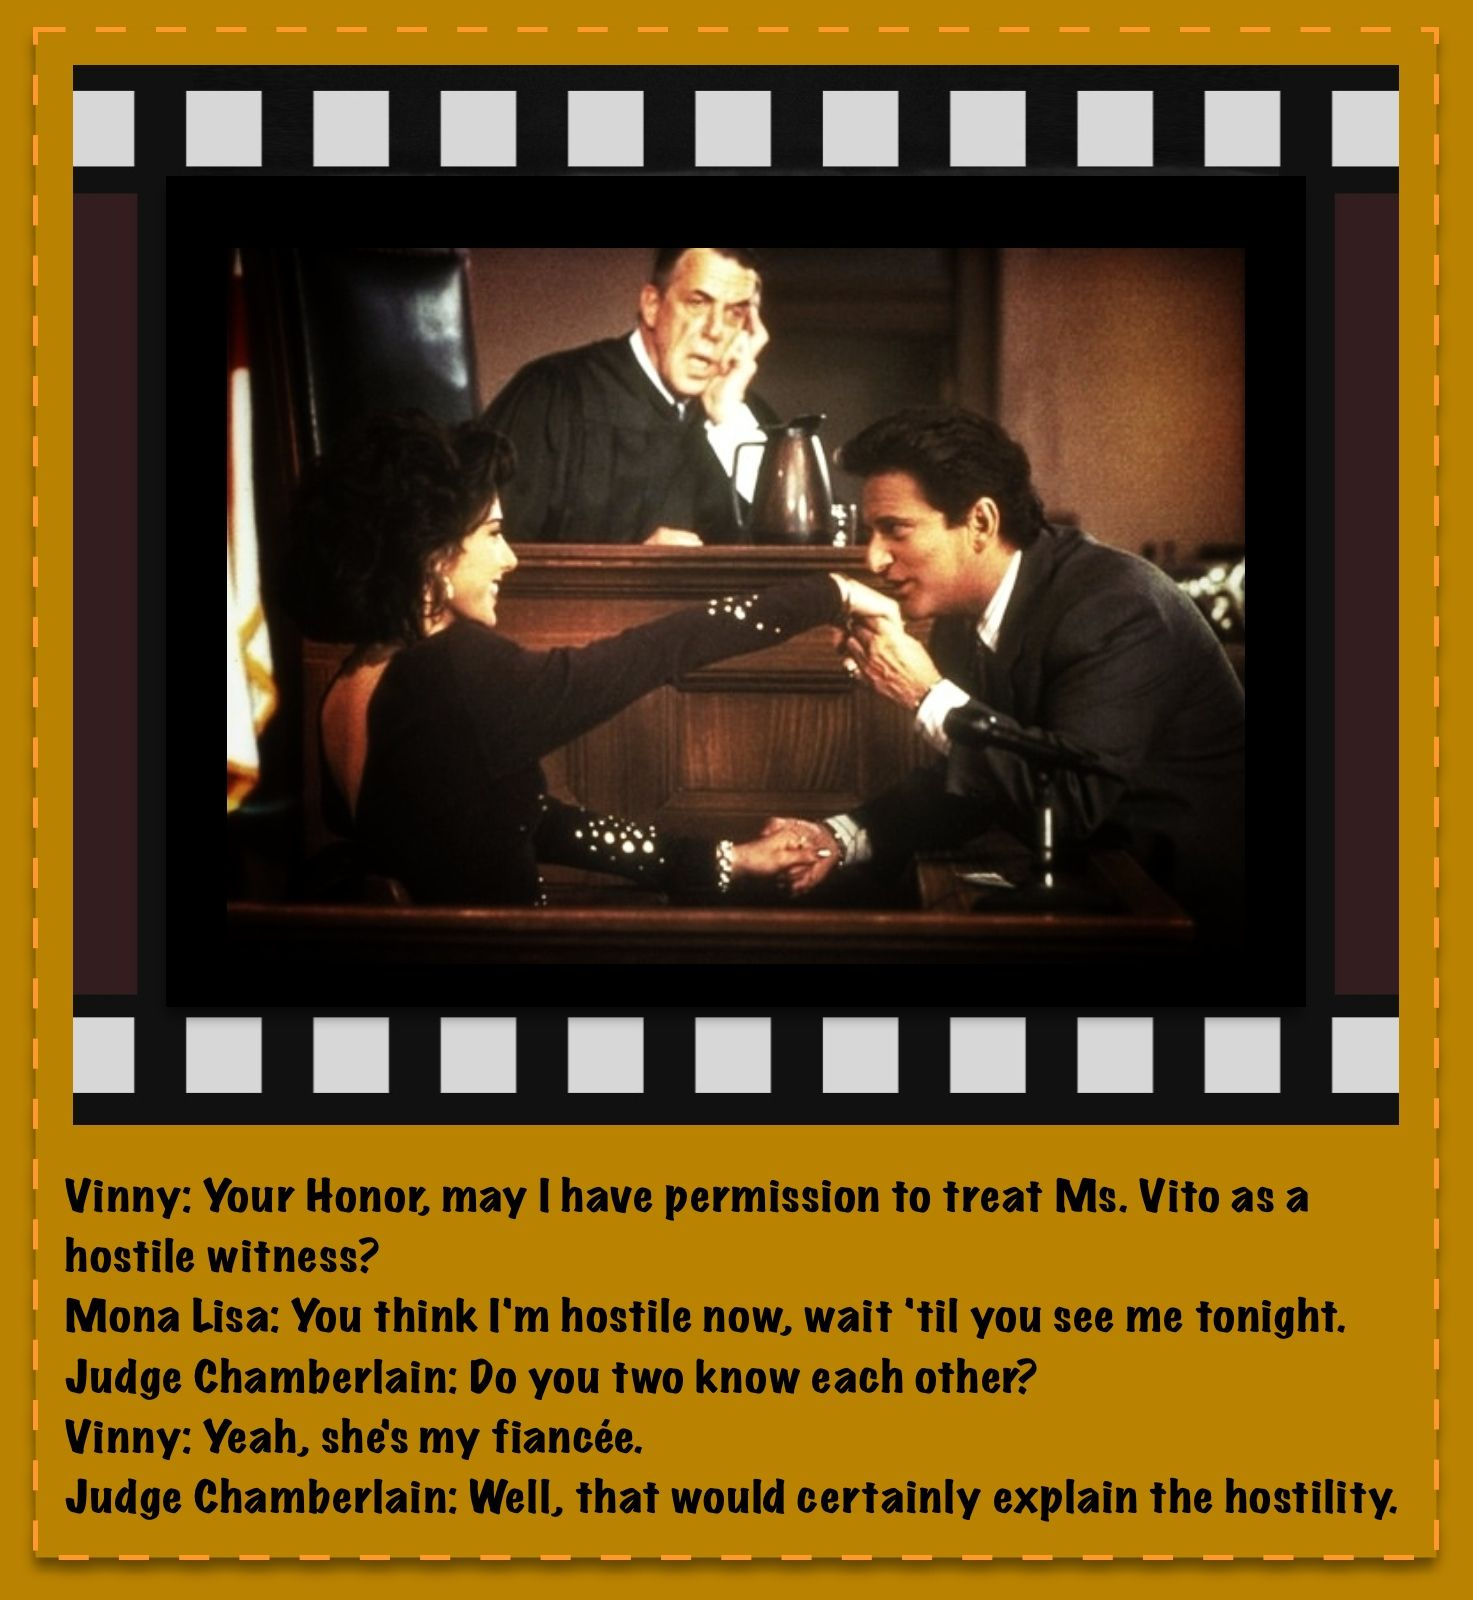 My Cousin Vinny Quotes My Cousin Vinny  Epic Movie Quotes  Pinterest  Movie Tvs And Book Tv